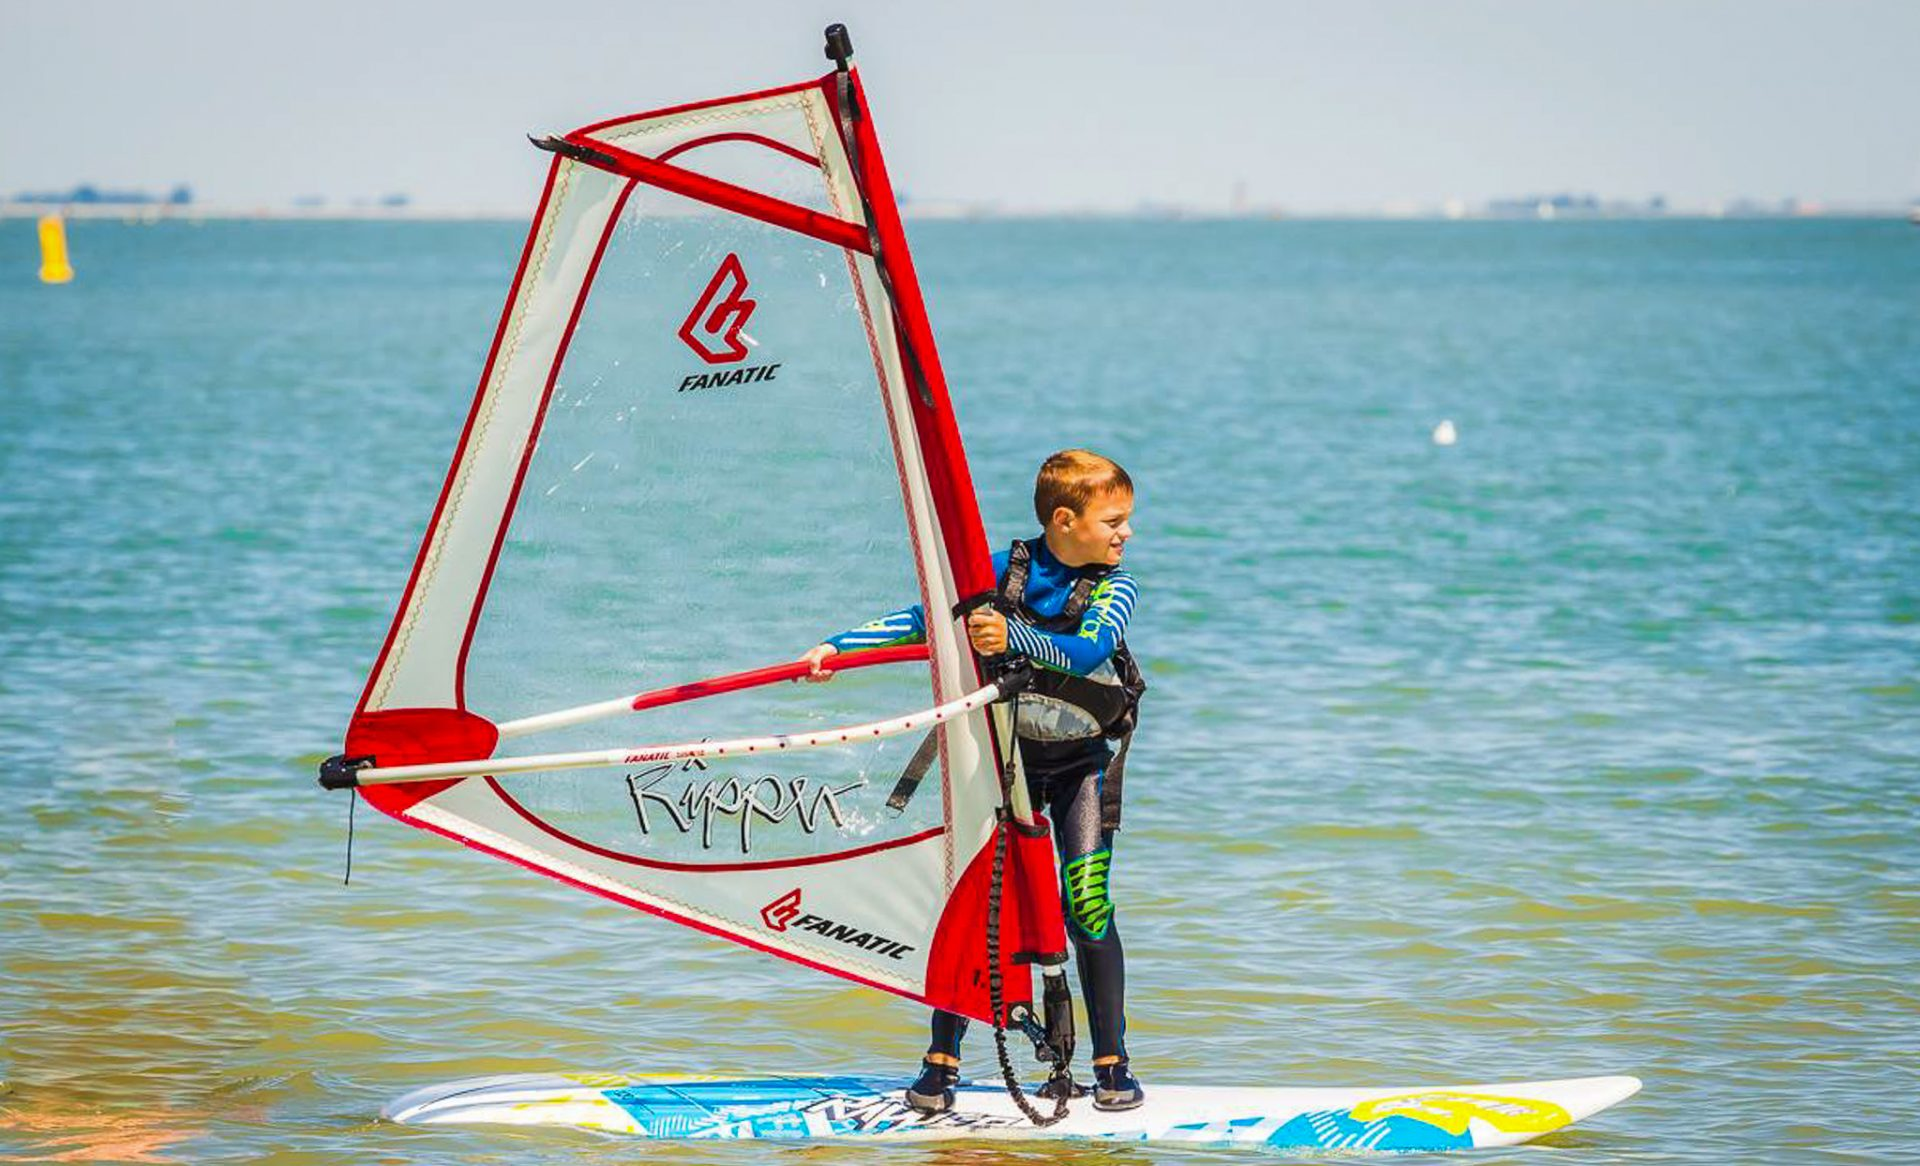 Windsurfles kids